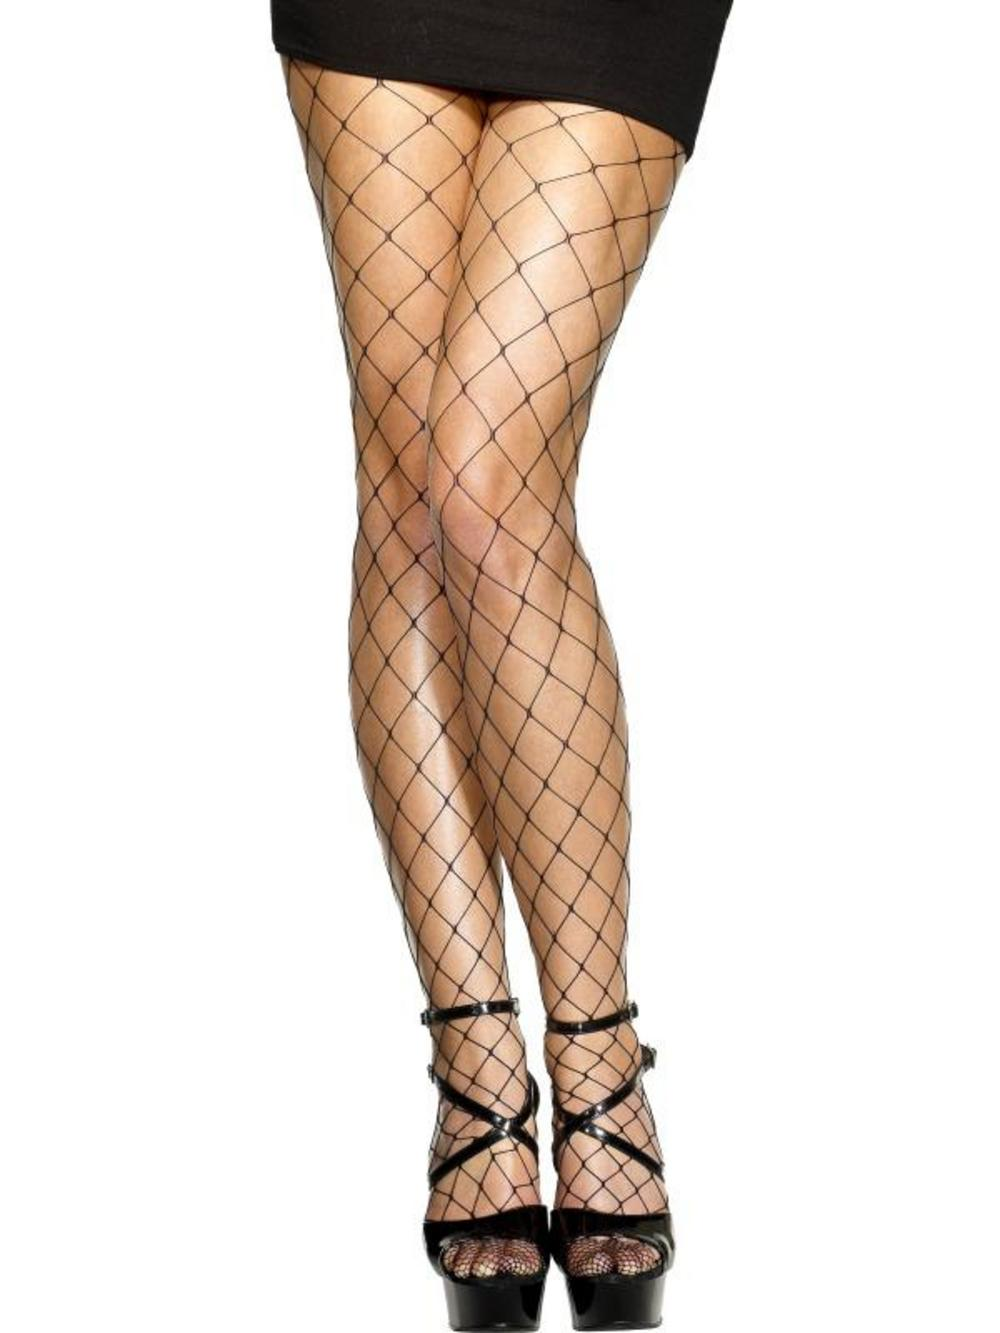 black diamond fishnet tights hosiery stockings mega